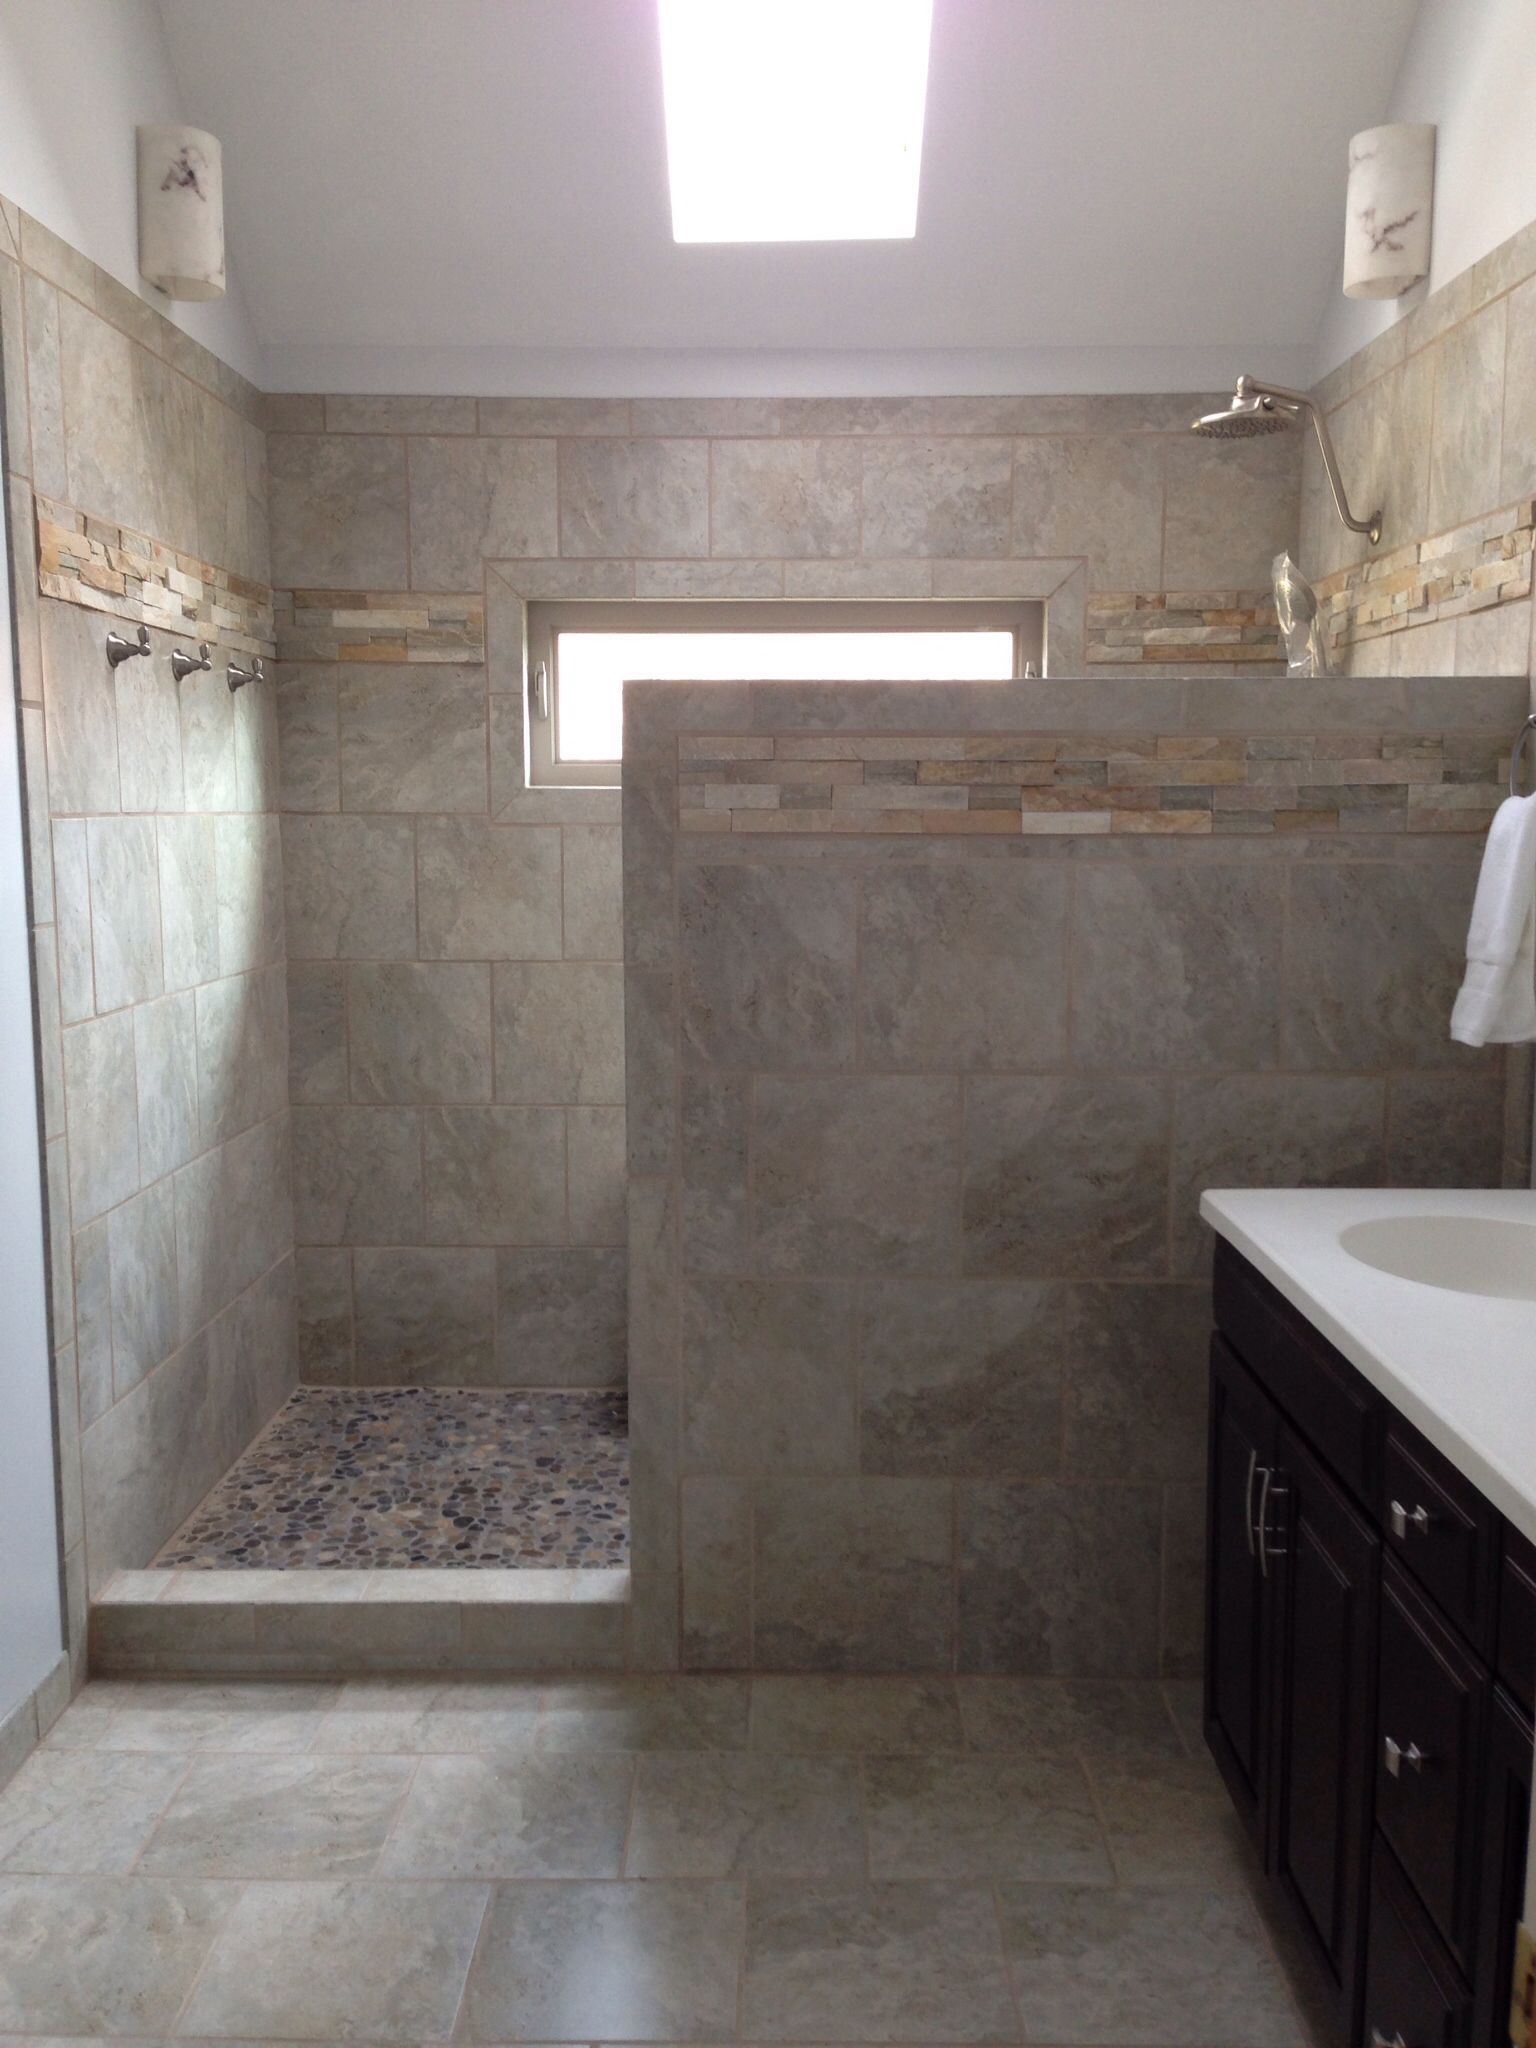 25 Walk In Showers For Small Bathrooms To Your Ideas And Inspiration Small Bathroom Remodel Shower Remodel Bathroom Remodel Shower